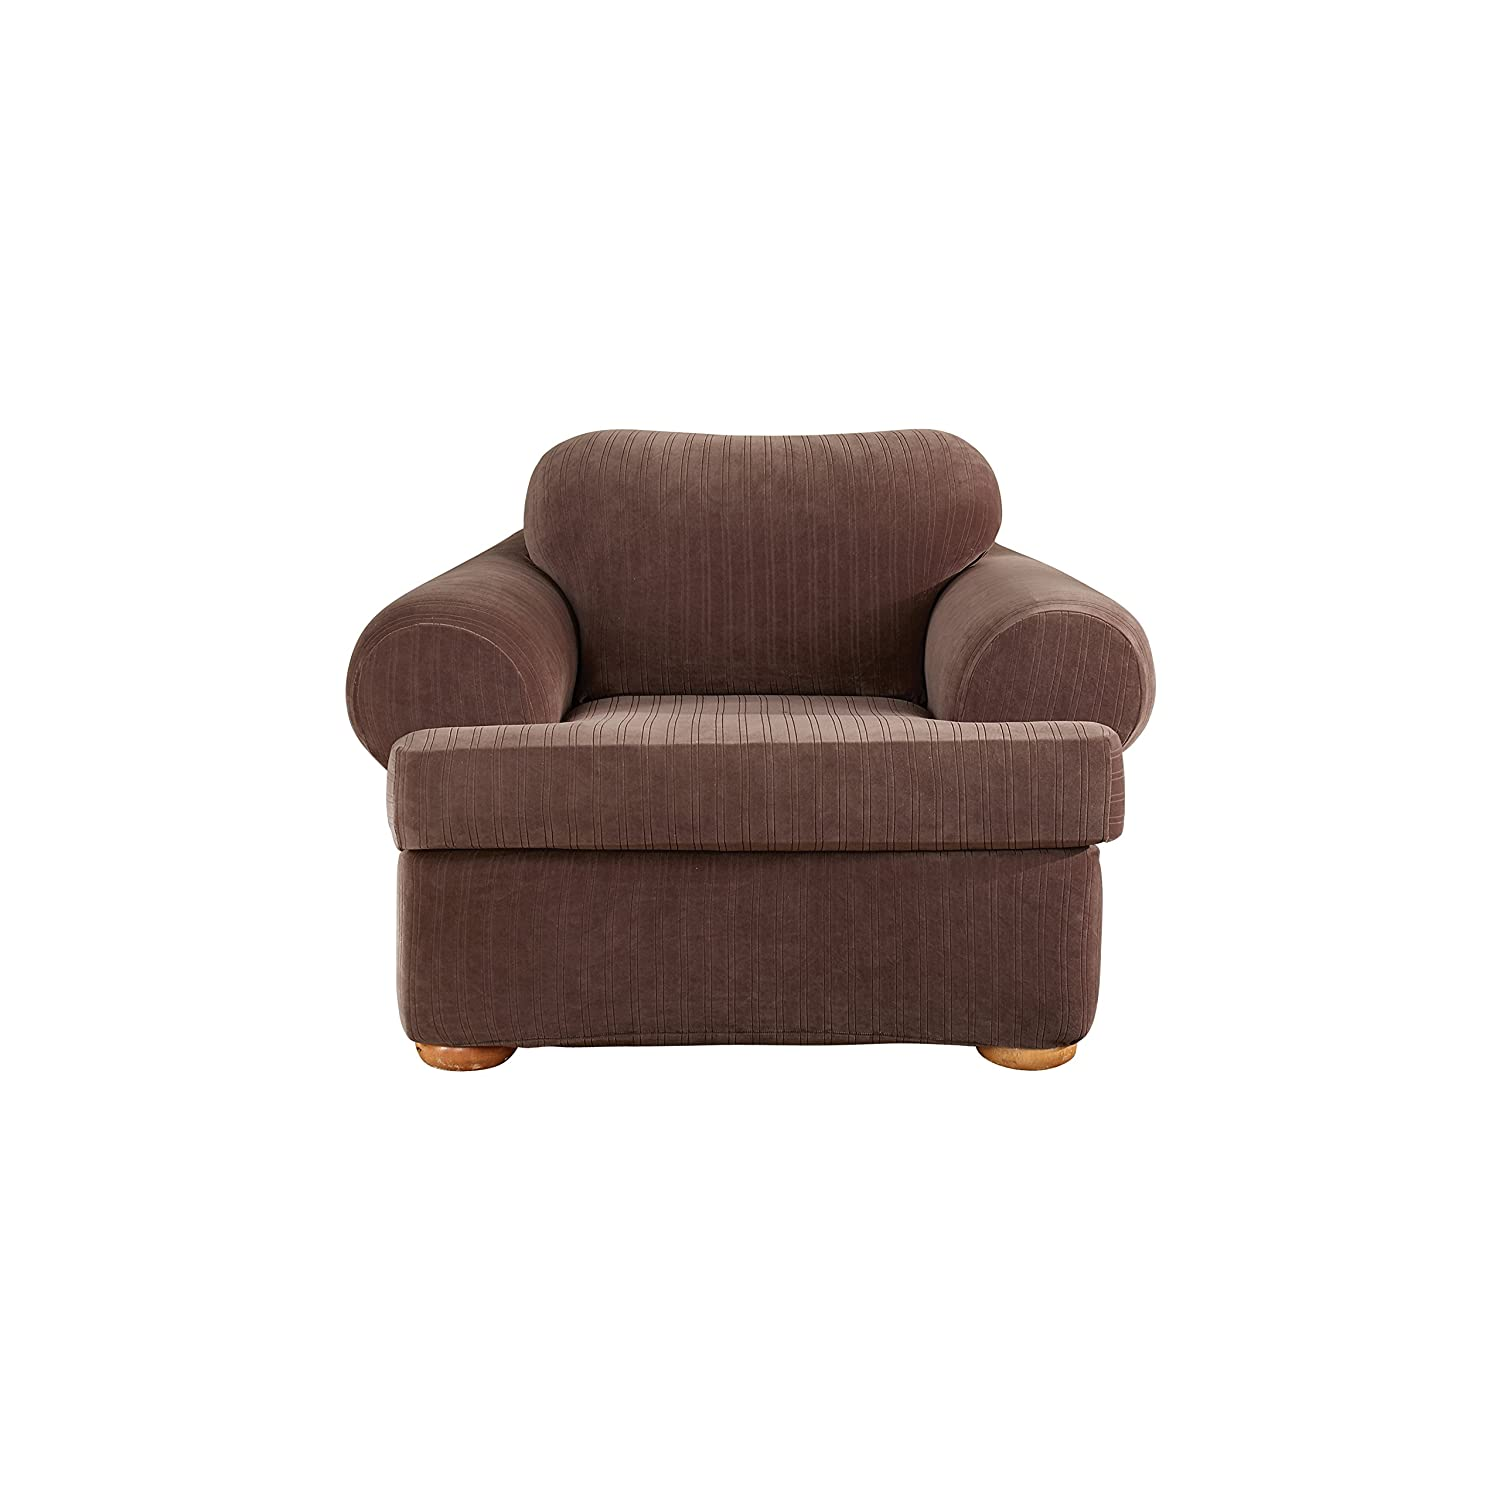 amazoncom sure fit stretch pinstripe 2piece sofa slipcover taupe sf35825 home u0026 kitchen